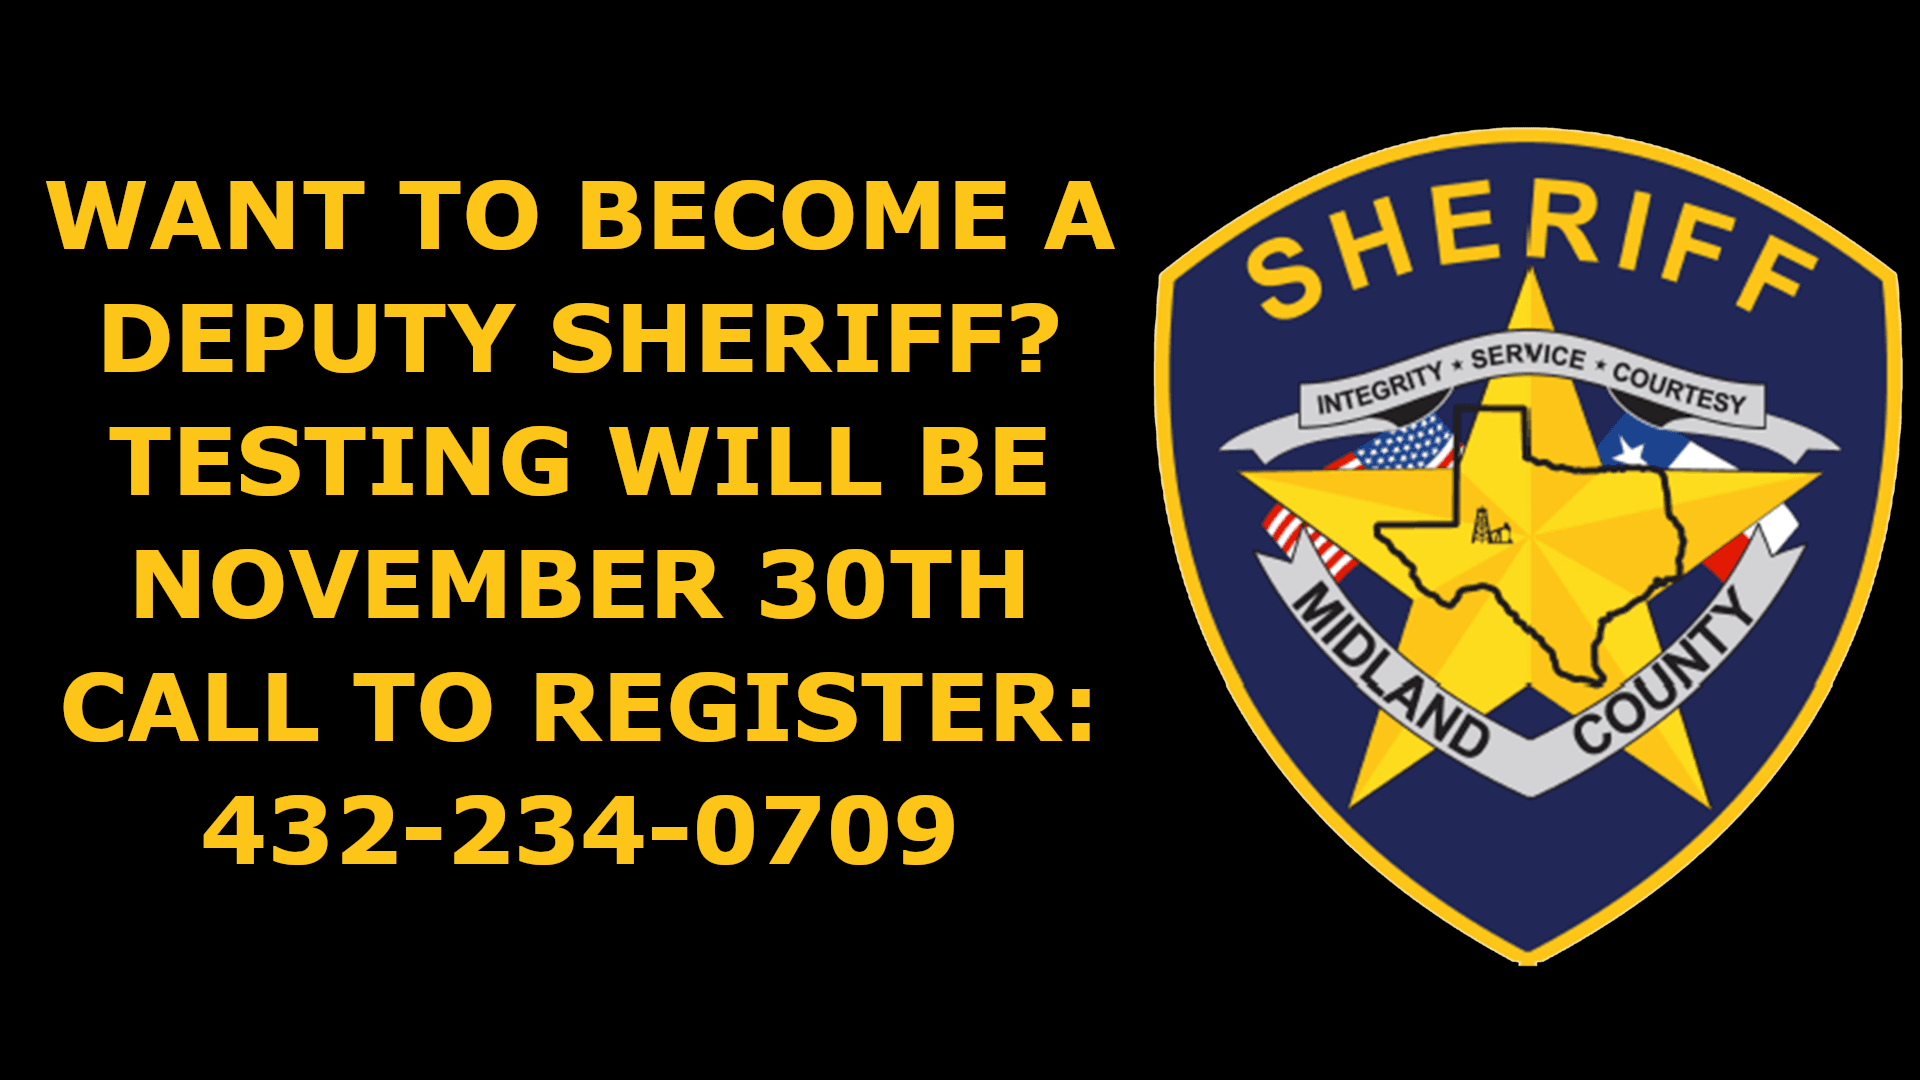 SHERIFF CADET PROGRAM